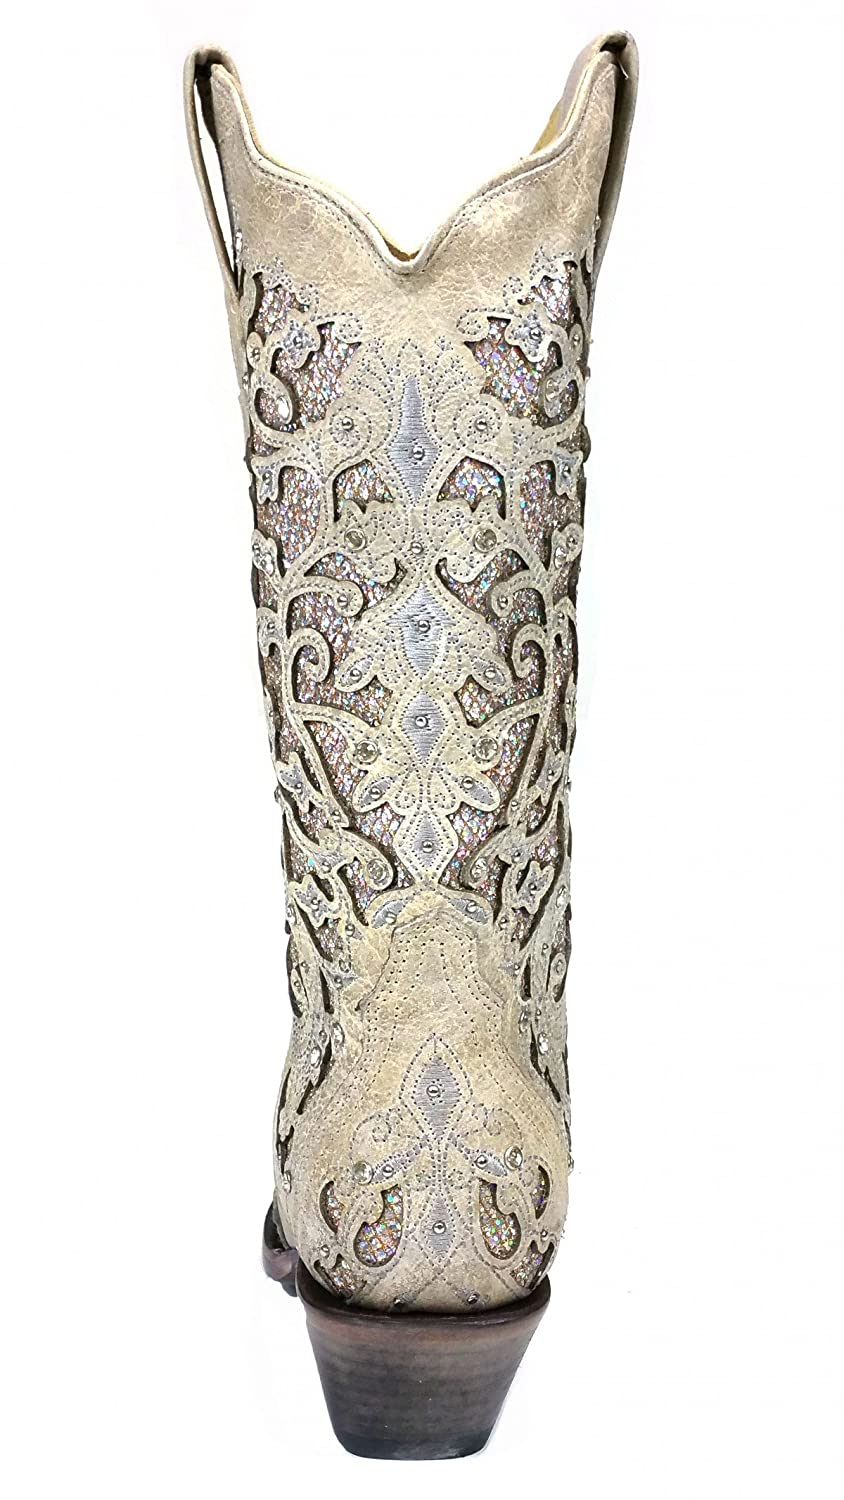 CORRAL A3322 Martina White Women's Fashion Glitter Inlay Crystals Wedding Fashion Women's Western Boots B06XS36GH7 7.5 B(M) US|White 154dfc